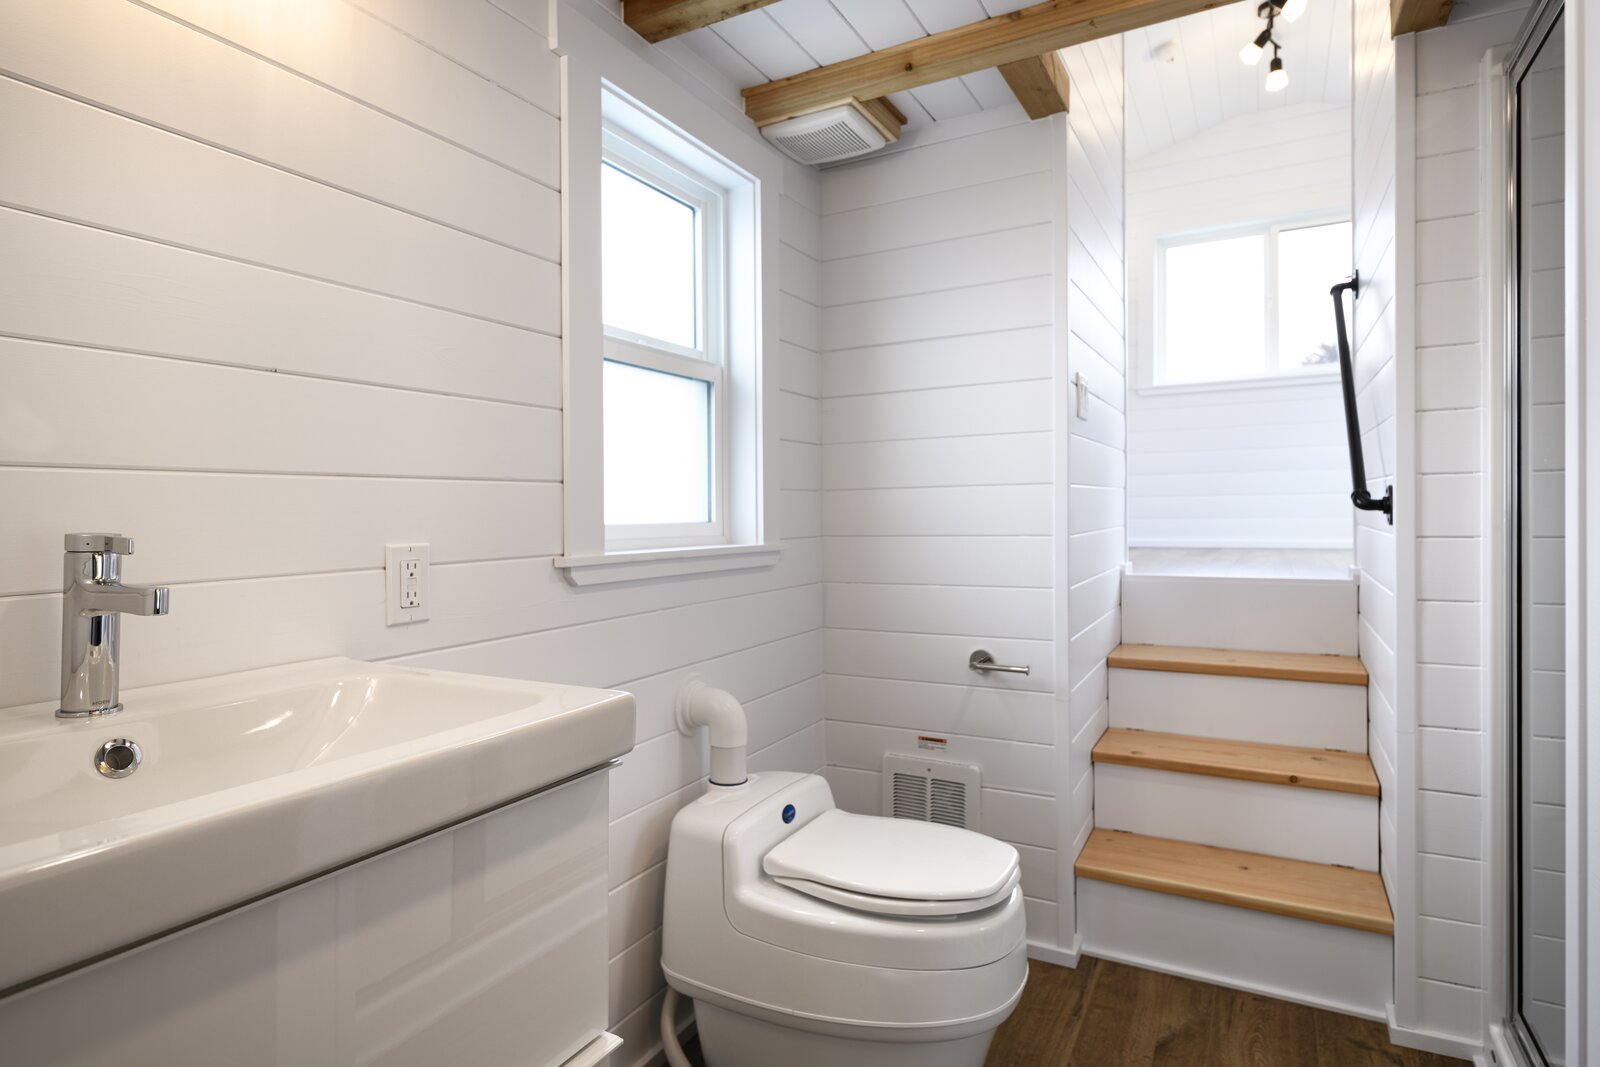 Bath Room, Vinyl Floor, Wall Mount Sink, and One Piece Toilet The bathroom is outfitted with a composting toilet and a large window. The designers placed storage beneath the stair treads that lead to the main bedroom.  Photo 6 of 11 in One Family's 416-Square-Foot Digs Expand the Limits of Tiny Home Living